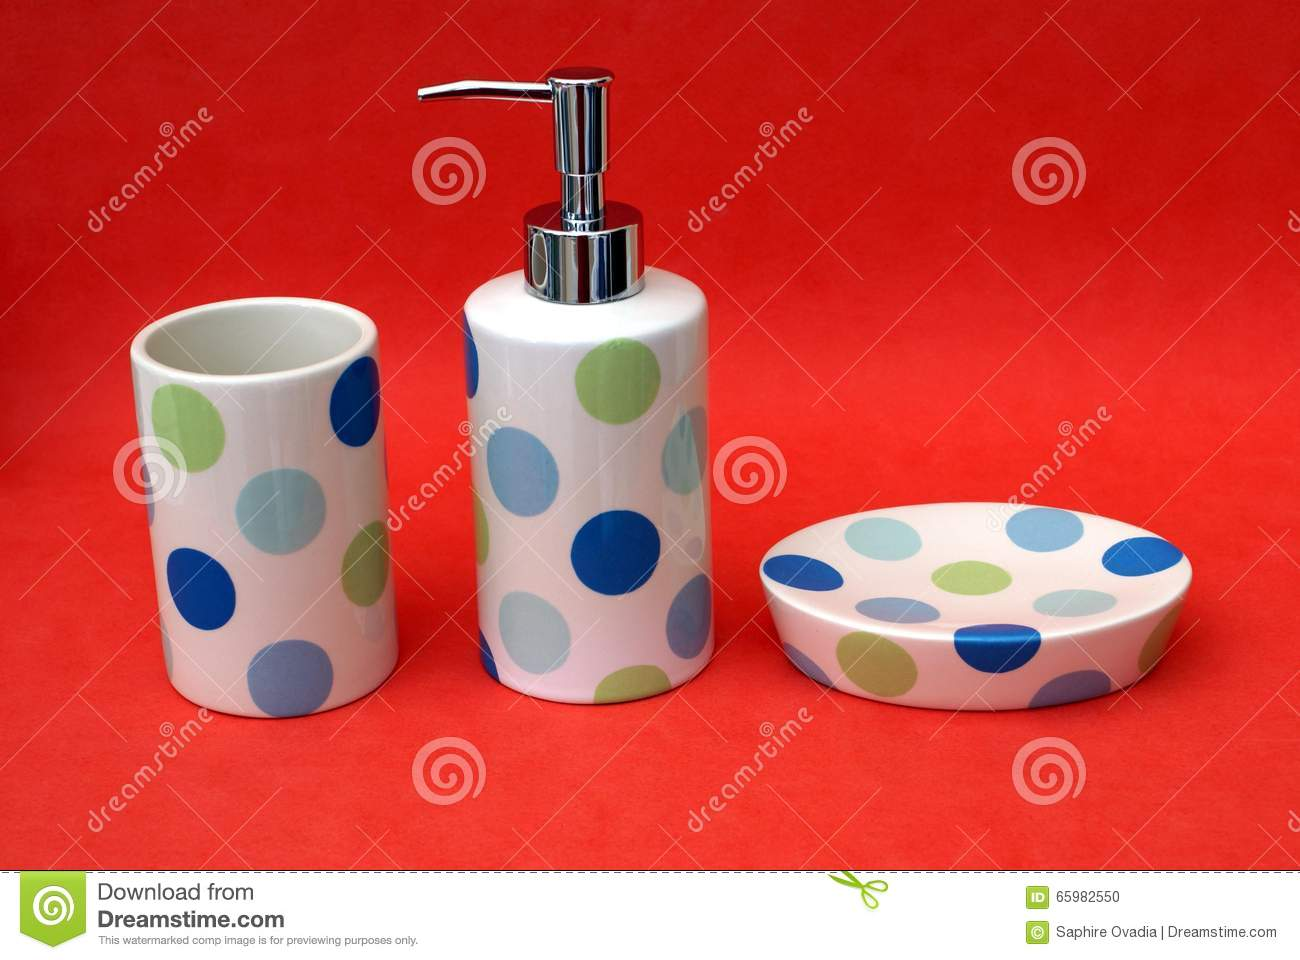 Bathroom Toiletries. Set Of Bathroom Toiletry.